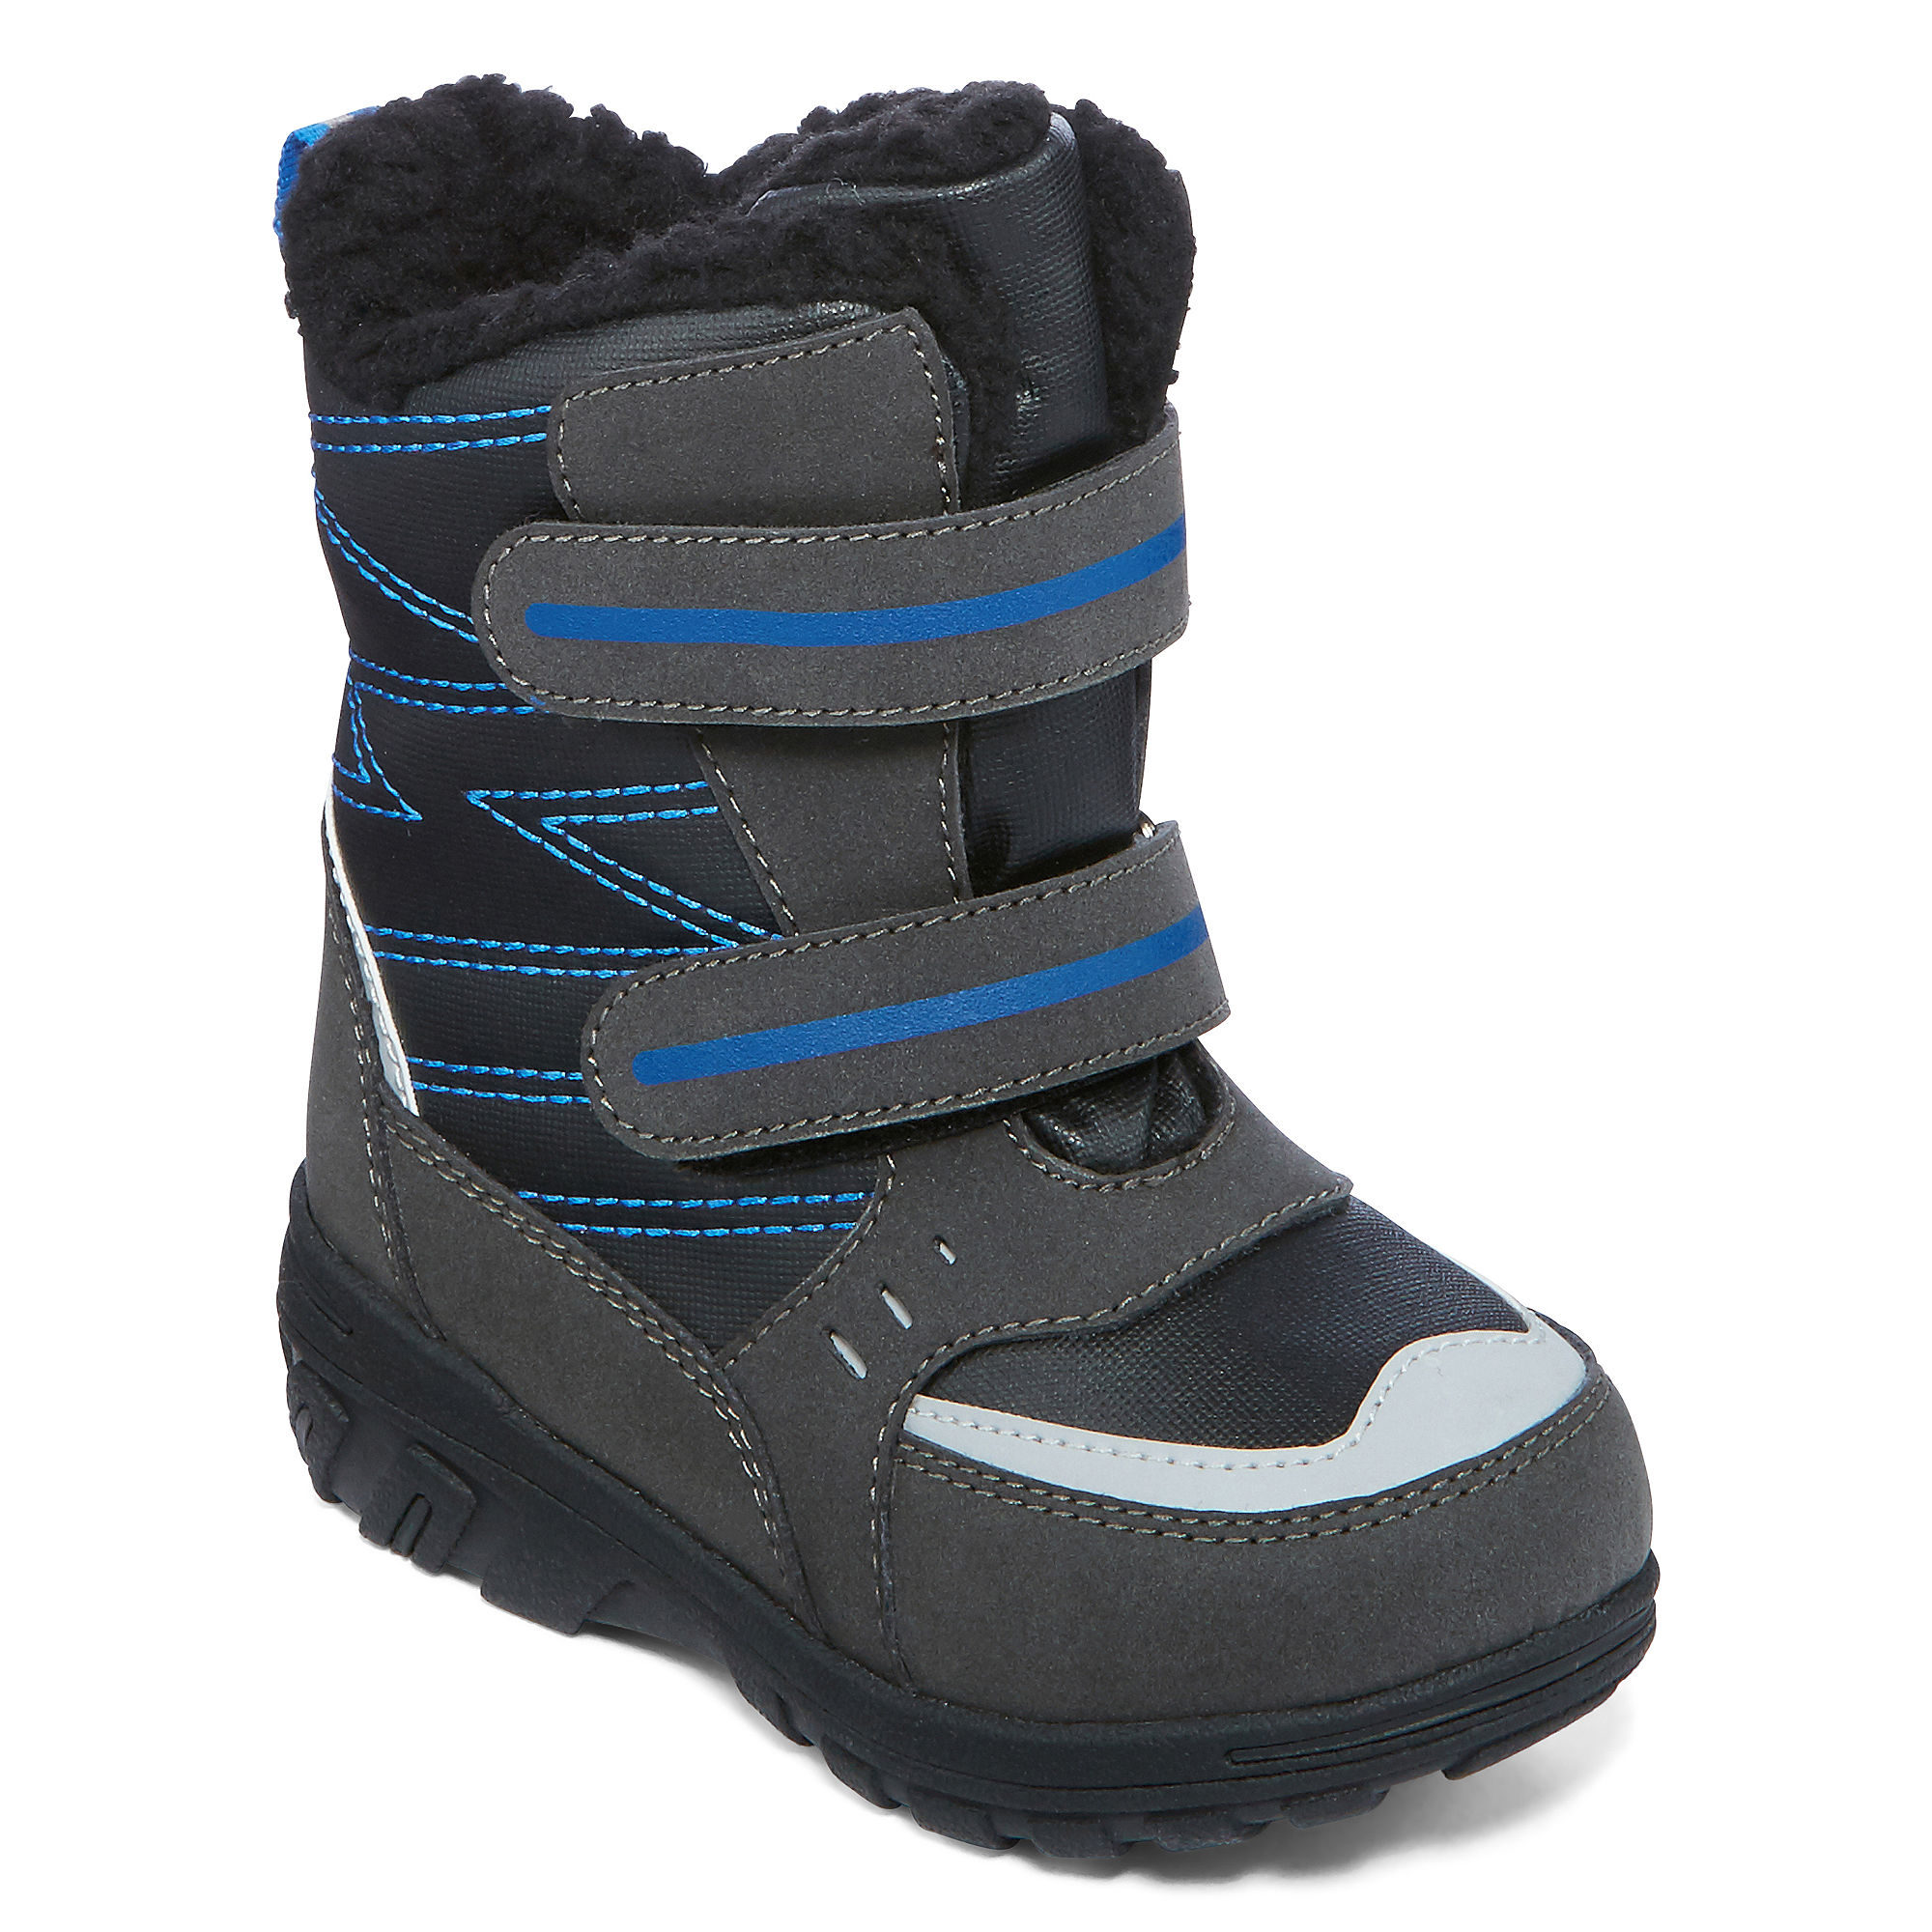 totes Toby Boys Insulated Double-Strap Boots - Toddler